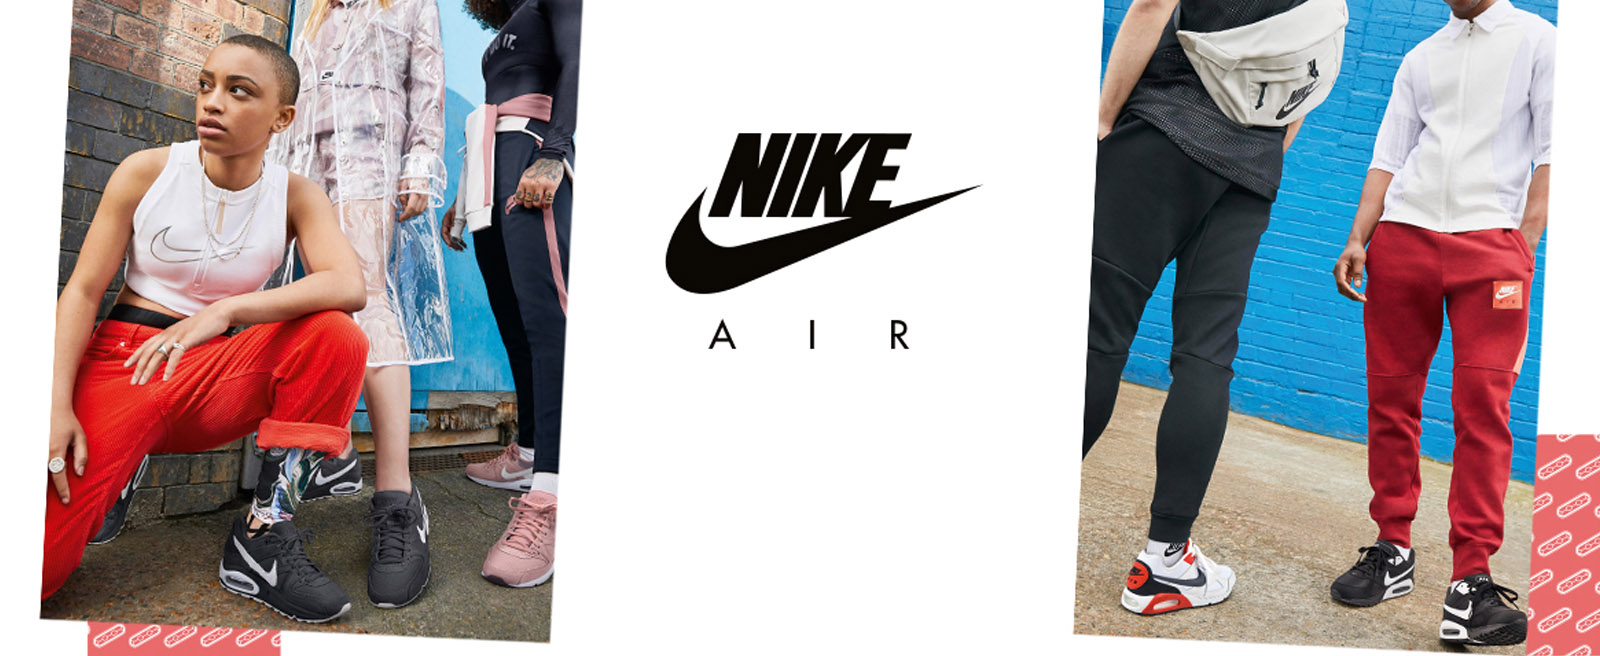 Nike Air Nailloux Outlet Village